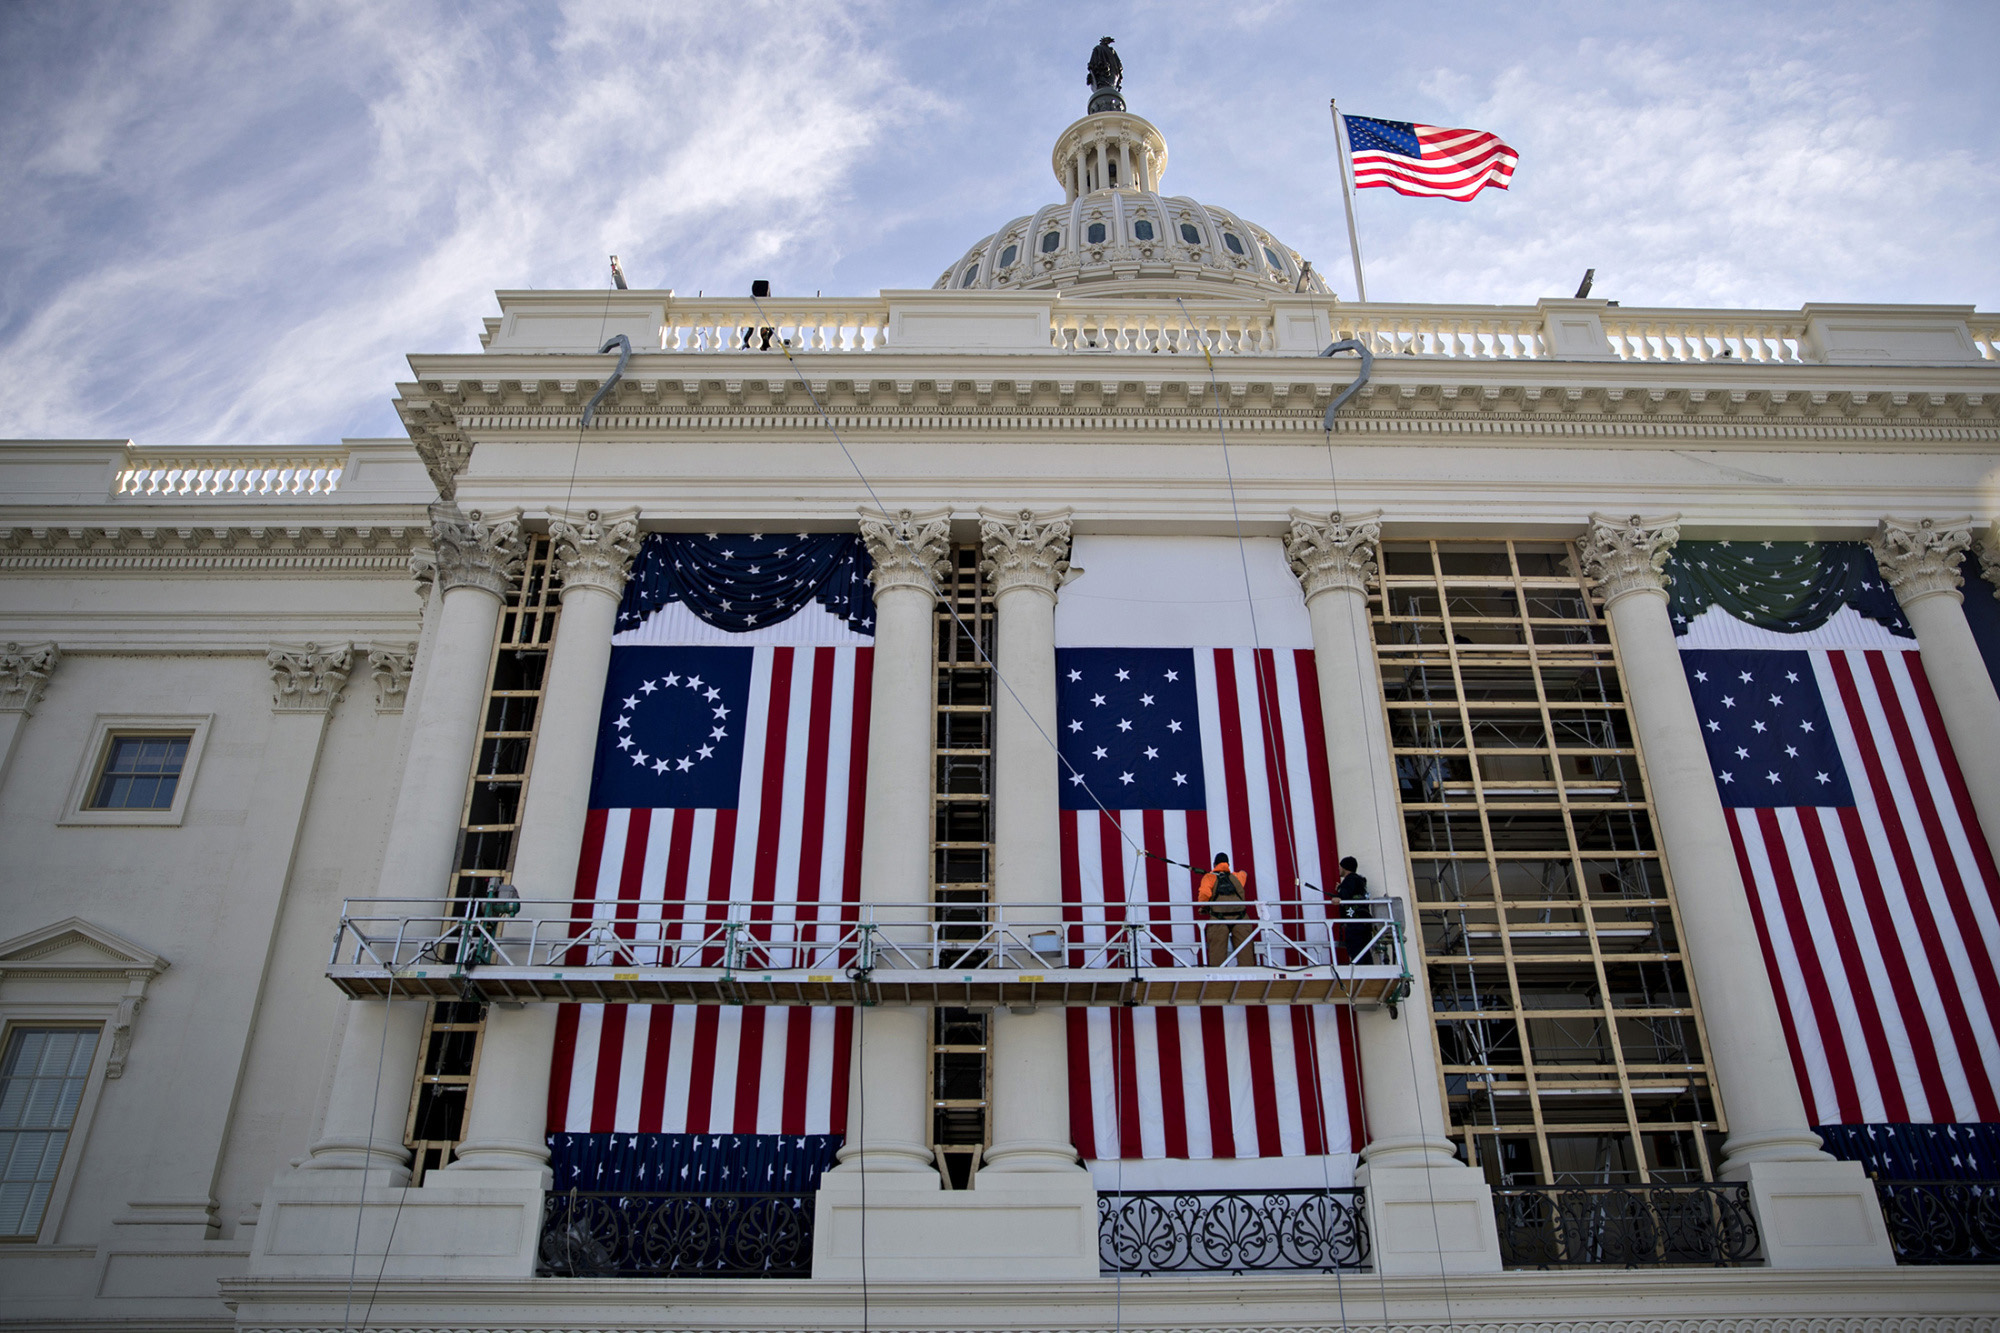 Workers adjust an American flag at the U.S. Capitol building during rehearsal for the 2017 Inaugural Ceremonies in Washington on Jan. 15, 2017. MUST CREDIT: Bloomberg photo by Andrew Harrer.